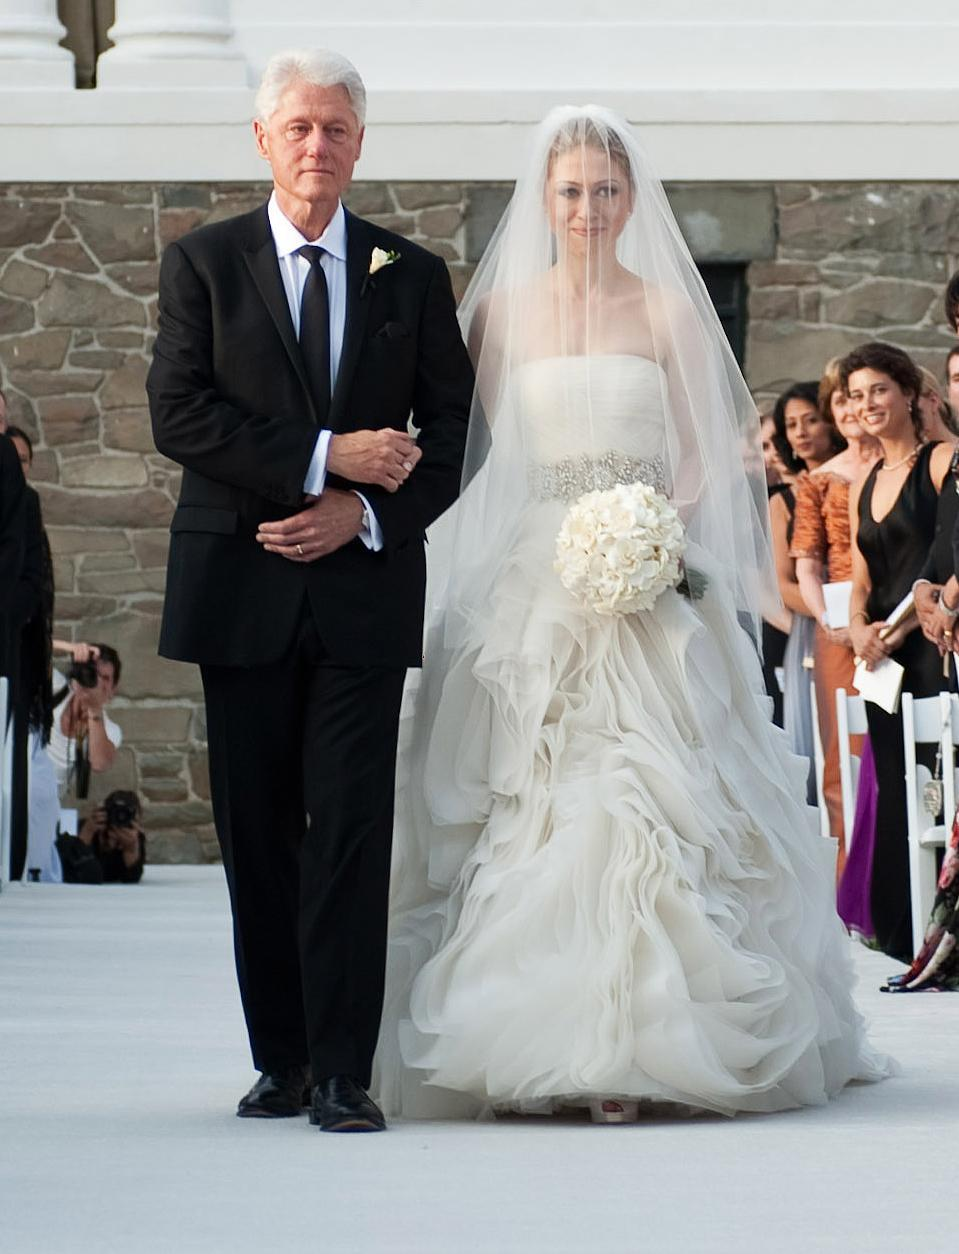 """<p>The First Daughter <a href=""""https://people.com/style/the-scoop-on-chelsea-clintons-wedding-gown-and-what-bill-and-hillary-wore/"""" rel=""""nofollow noopener"""" target=""""_blank"""" data-ylk=""""slk:donned a design by Wang (a friend of the family's)"""" class=""""link rapid-noclick-resp"""">donned a design by Wang (a friend of the family's)</a> for <a href=""""https://people.com/celebrity/chelsea-clintons-storybook-wedding/"""" rel=""""nofollow noopener"""" target=""""_blank"""" data-ylk=""""slk:her 2010 wedding to Mark Mezvinsky"""" class=""""link rapid-noclick-resp"""">her 2010 wedding to Mark Mezvinsky</a>. It featured a gathered silk organza skirt, draped tulle bodice and an embellished belt.</p>"""